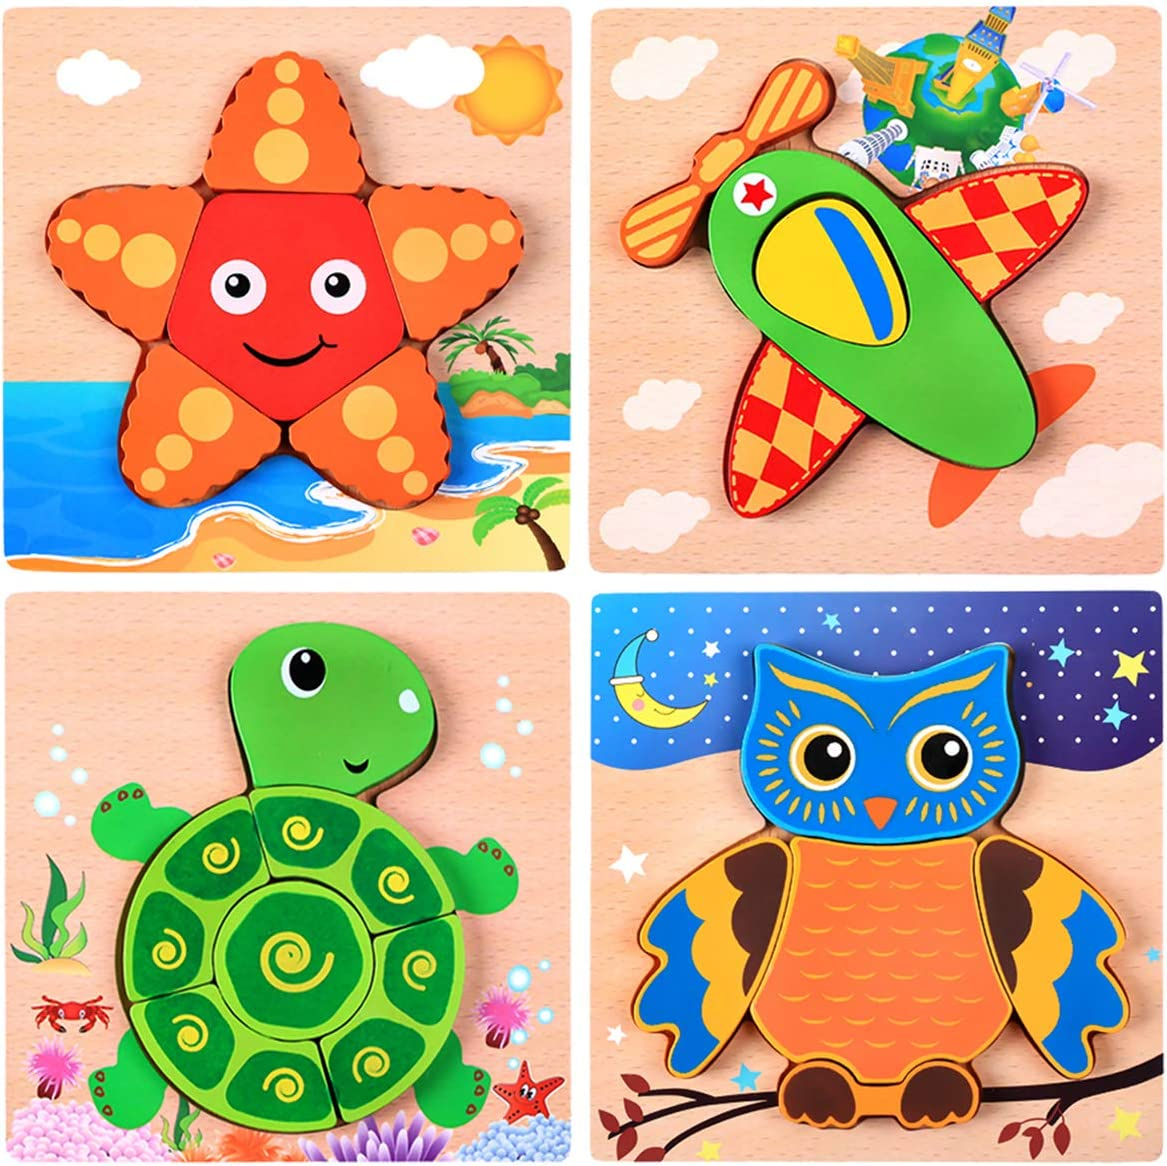 Set of 4 Puzzles Wooden Shapes Puzzles for Toddlers 3-5 Years Old,Bright Vibrant Color Shapes,Boys /& Girls Educational Toys Gift Kids Puzzles,Wooden Animal Jigsaw Puzzles